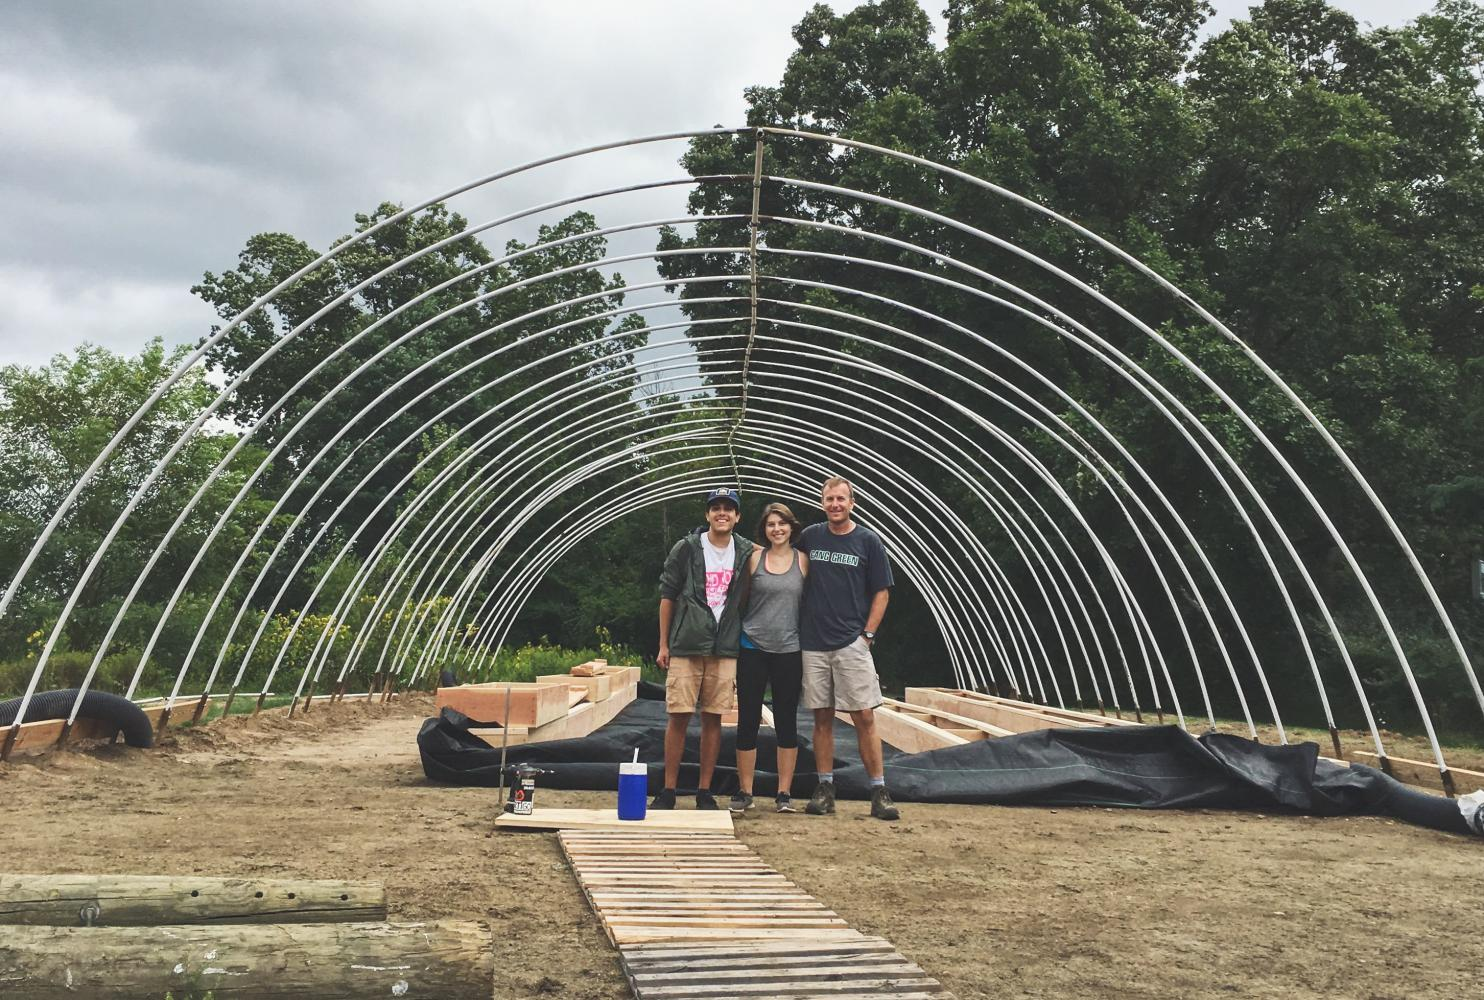 FHC's greenhouse strives to improve and connect the community